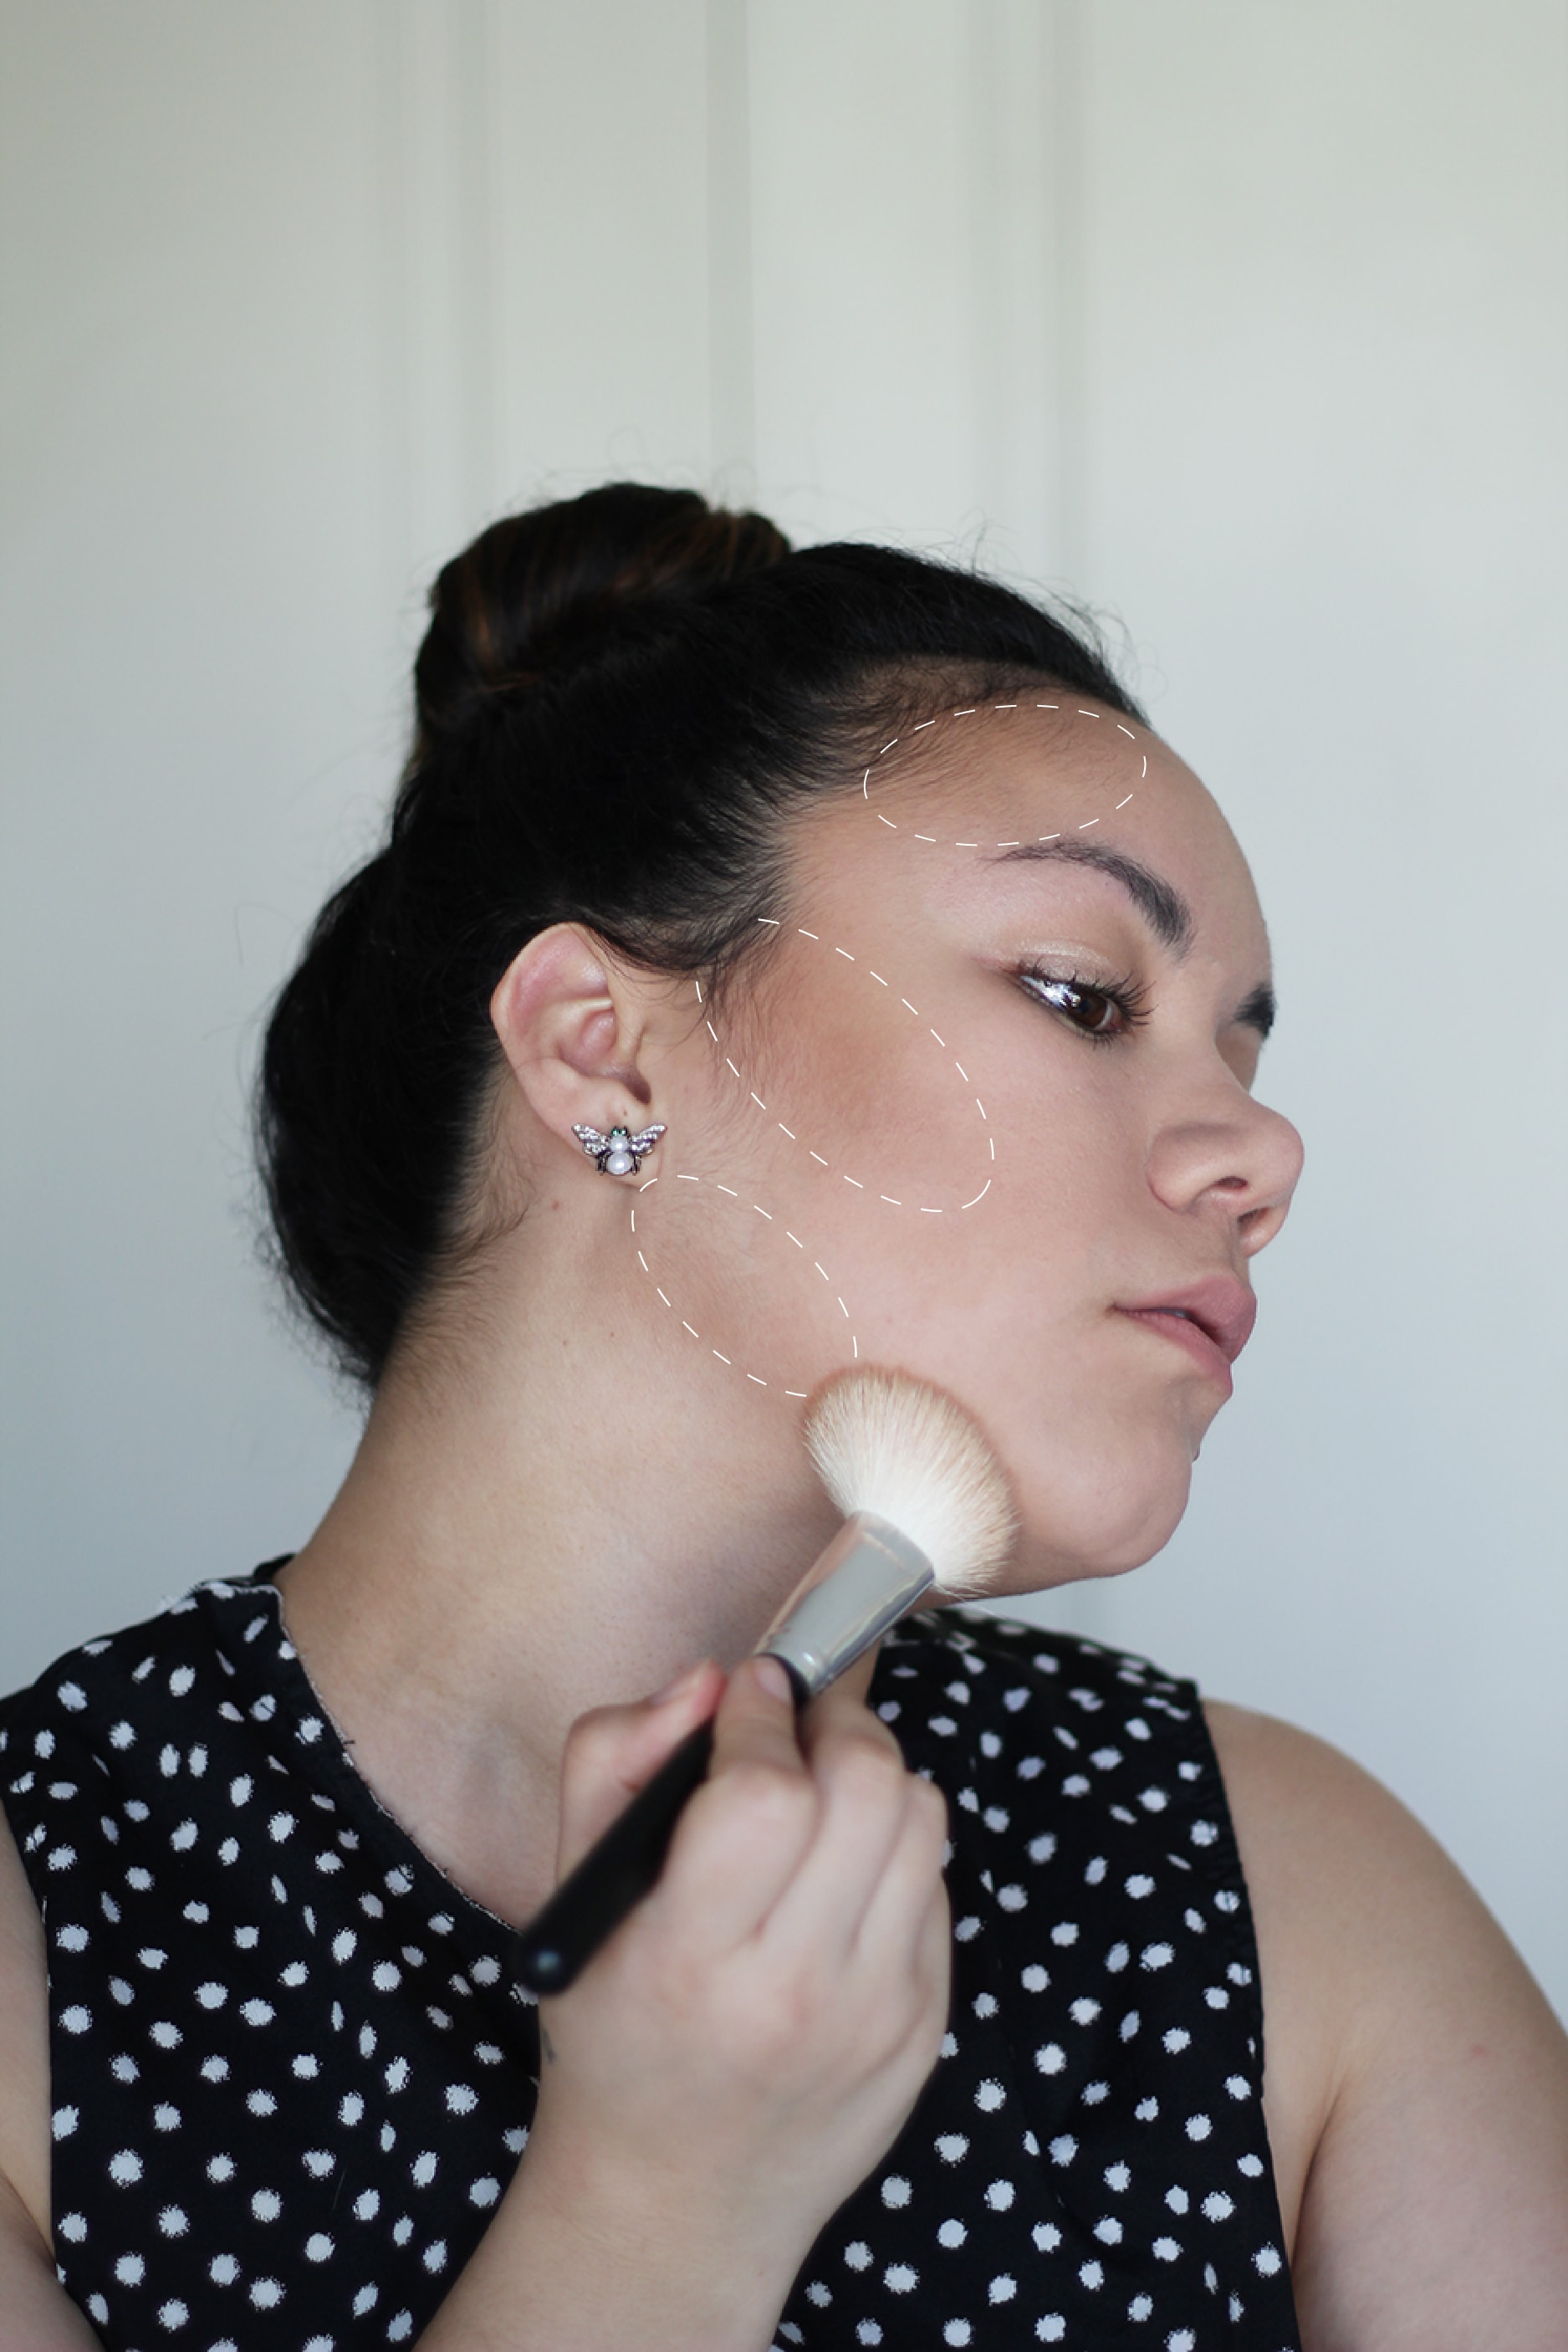 How to contour with powder - easy, quick tutorial | Maquillaje contorno en polvo